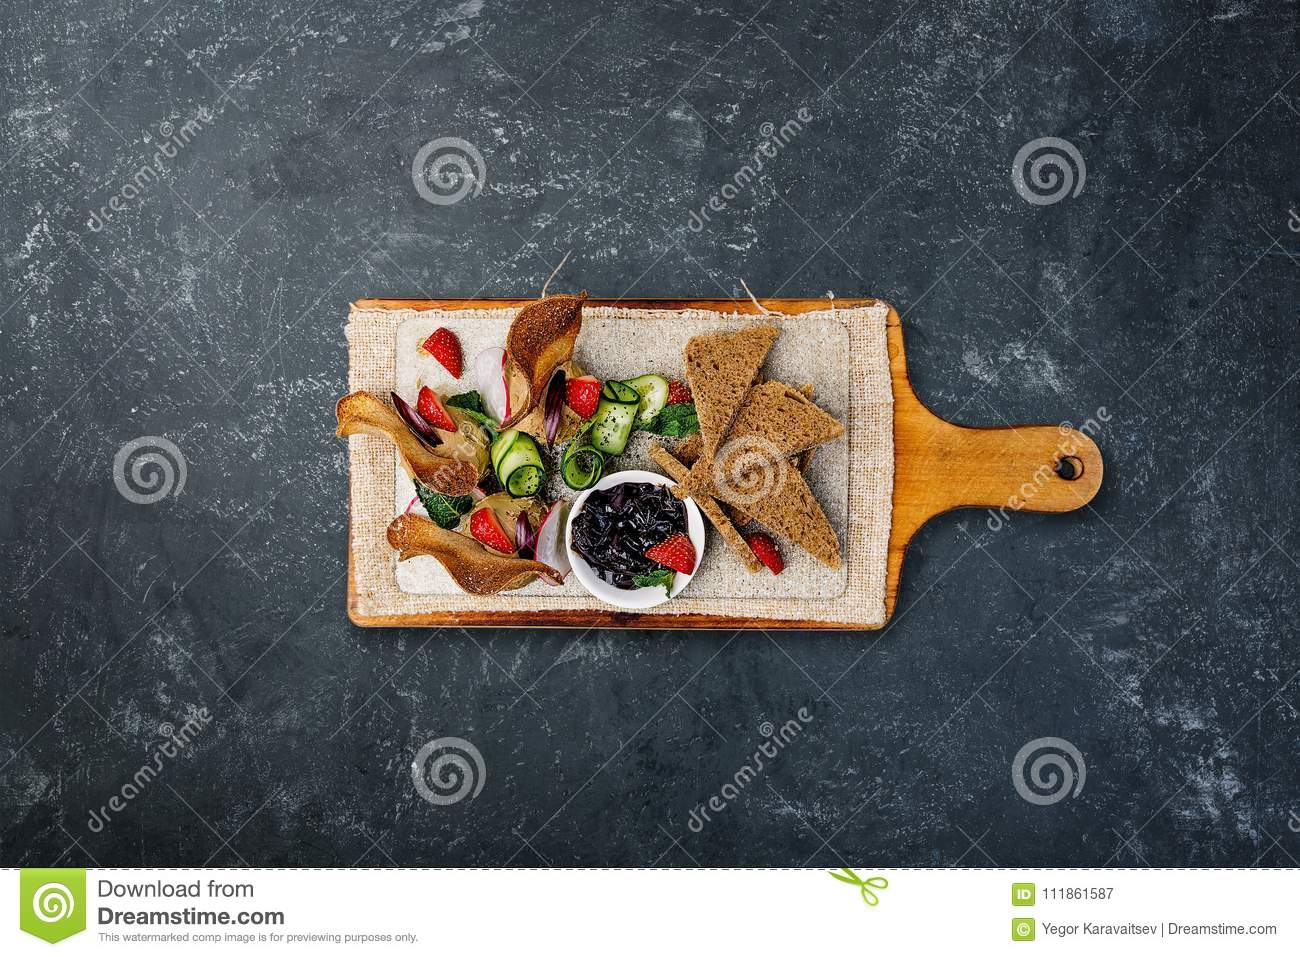 Chicken pate with plum sauce, served with croutons. Top view